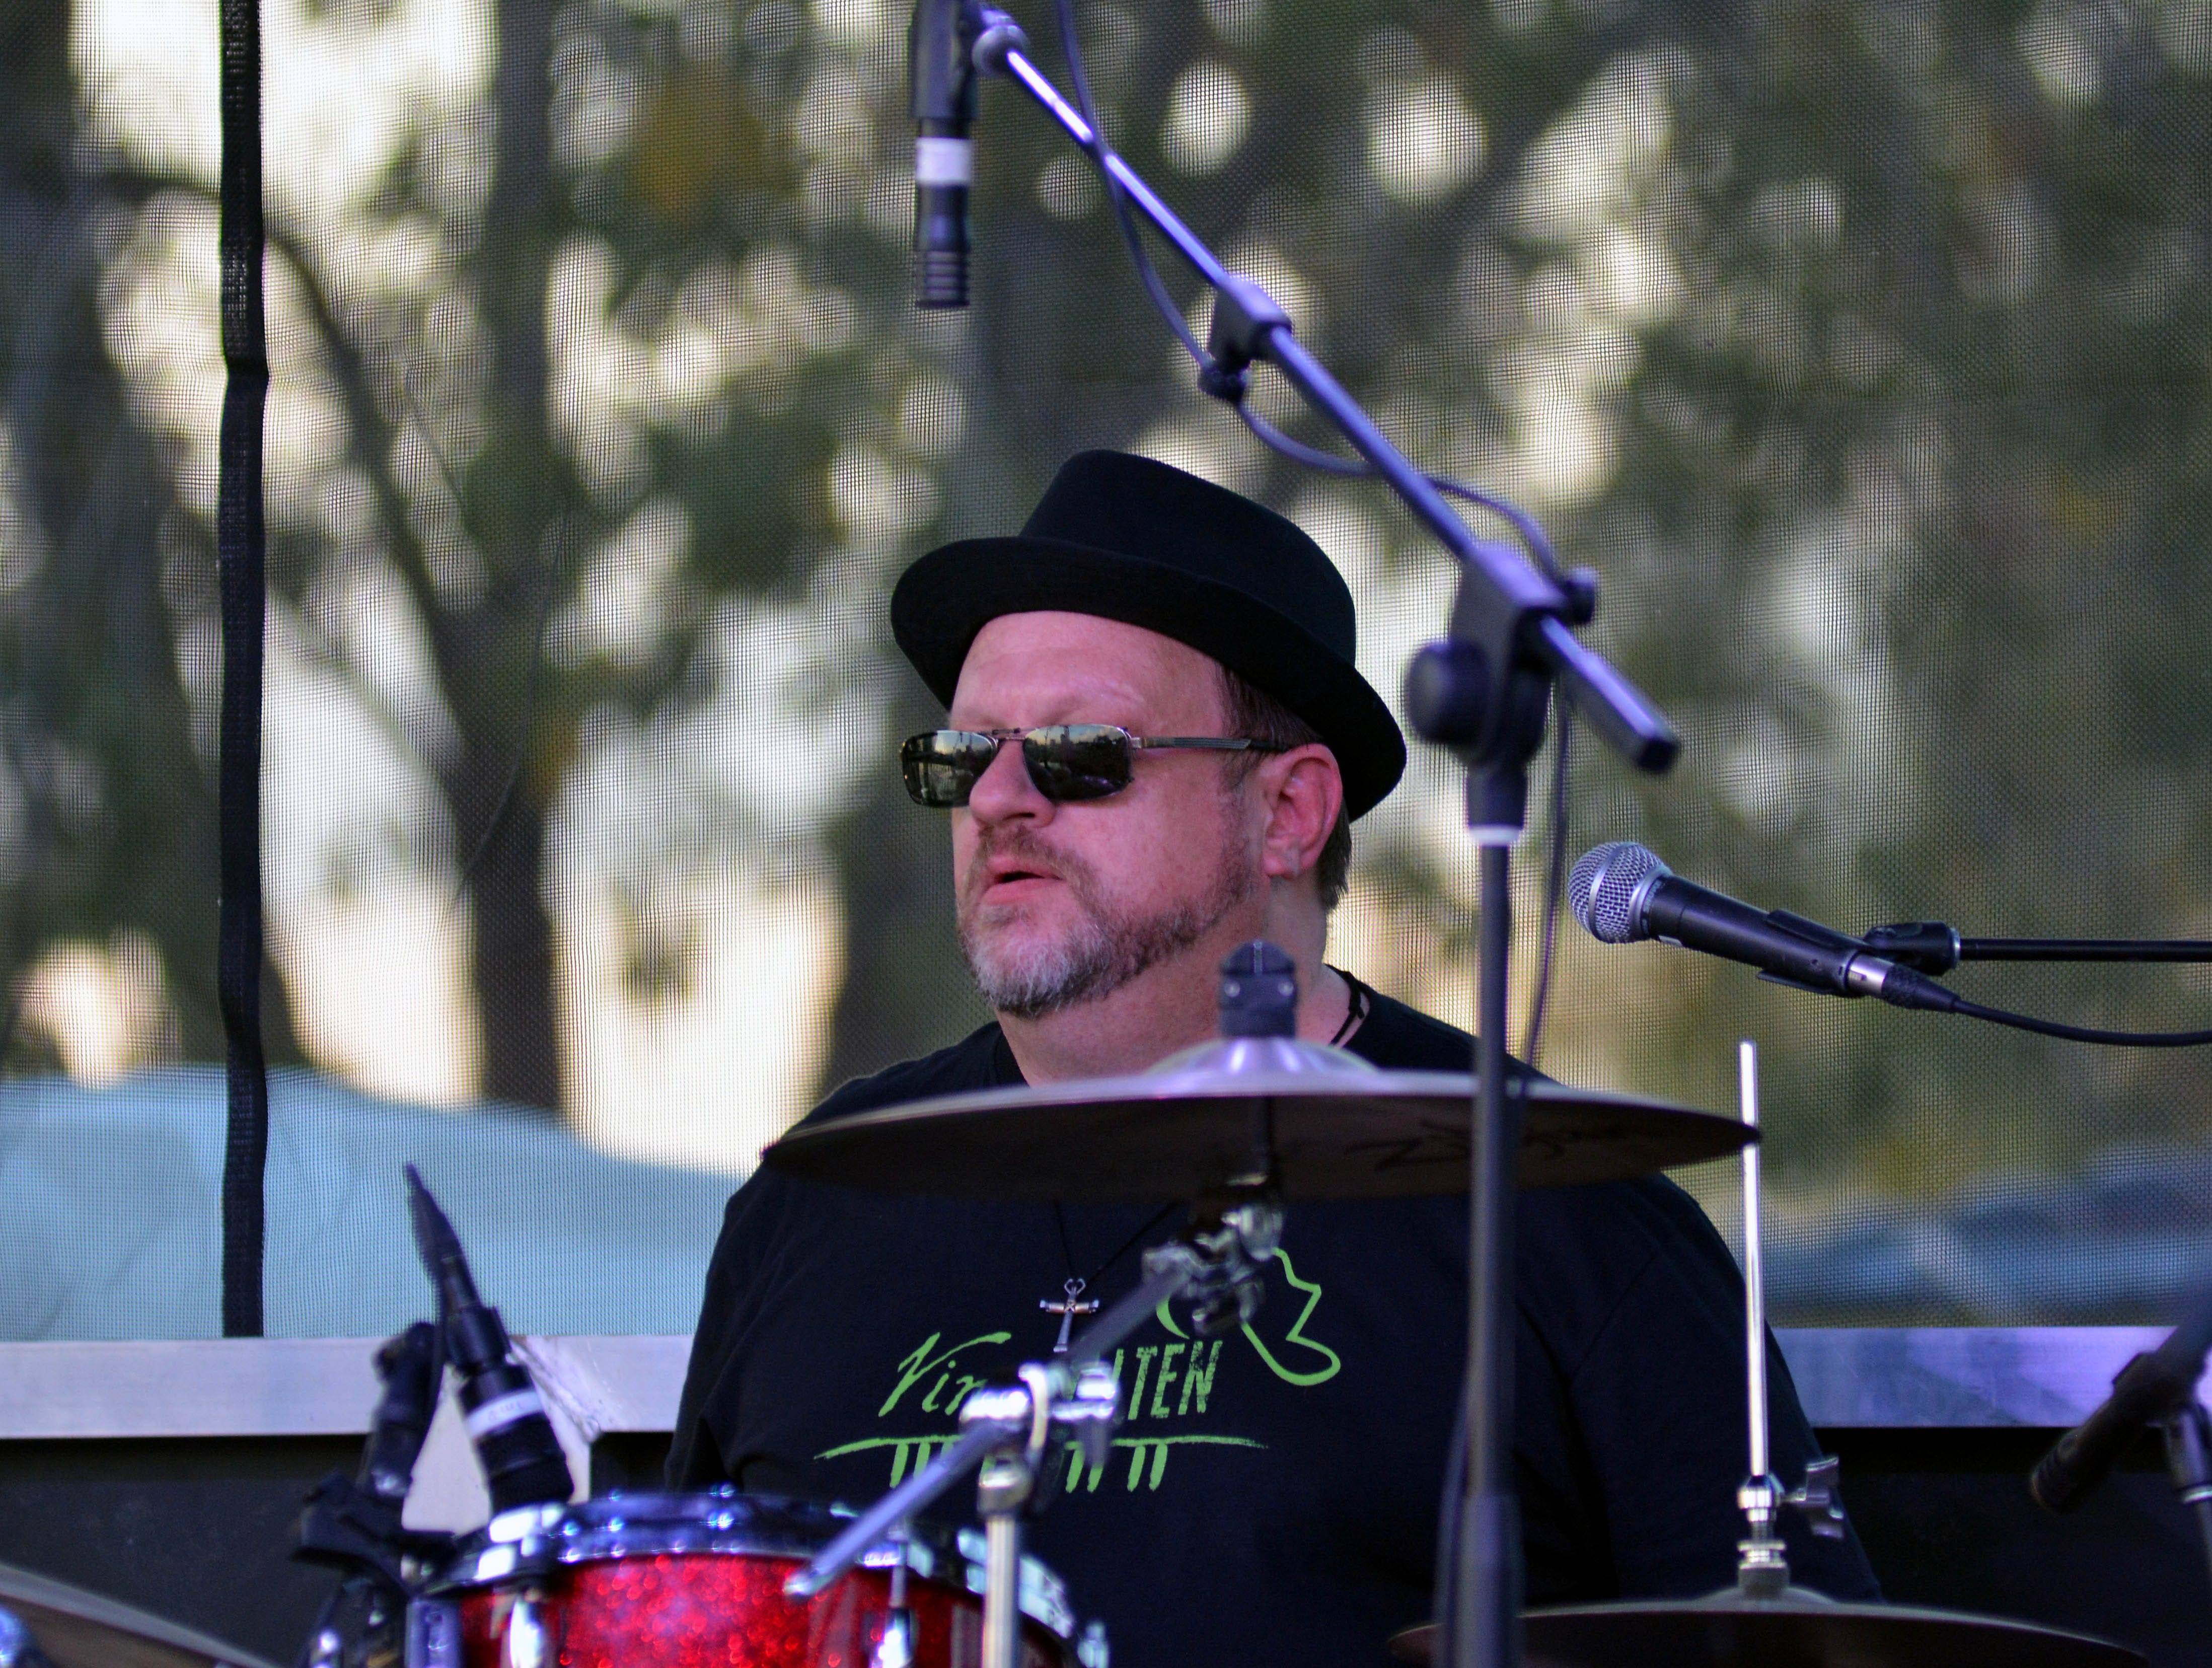 A member of the The Riff Raff, Vince Alten's band, drums at the Las Cruces Country Music Festival on Friday, Oct. 19, 2018.